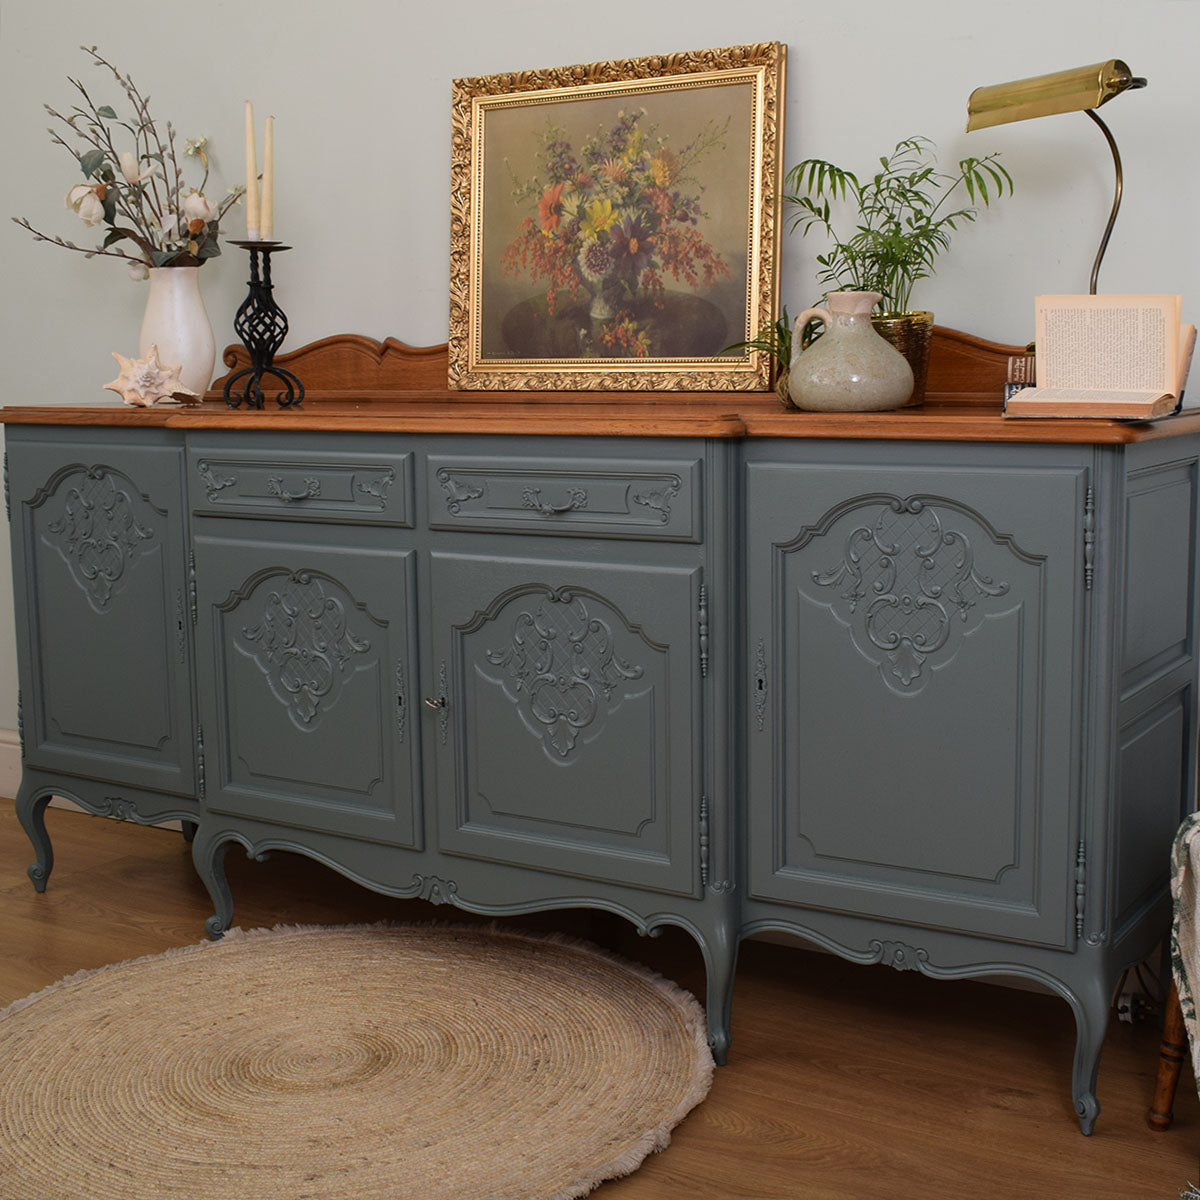 Restored French style sideboard